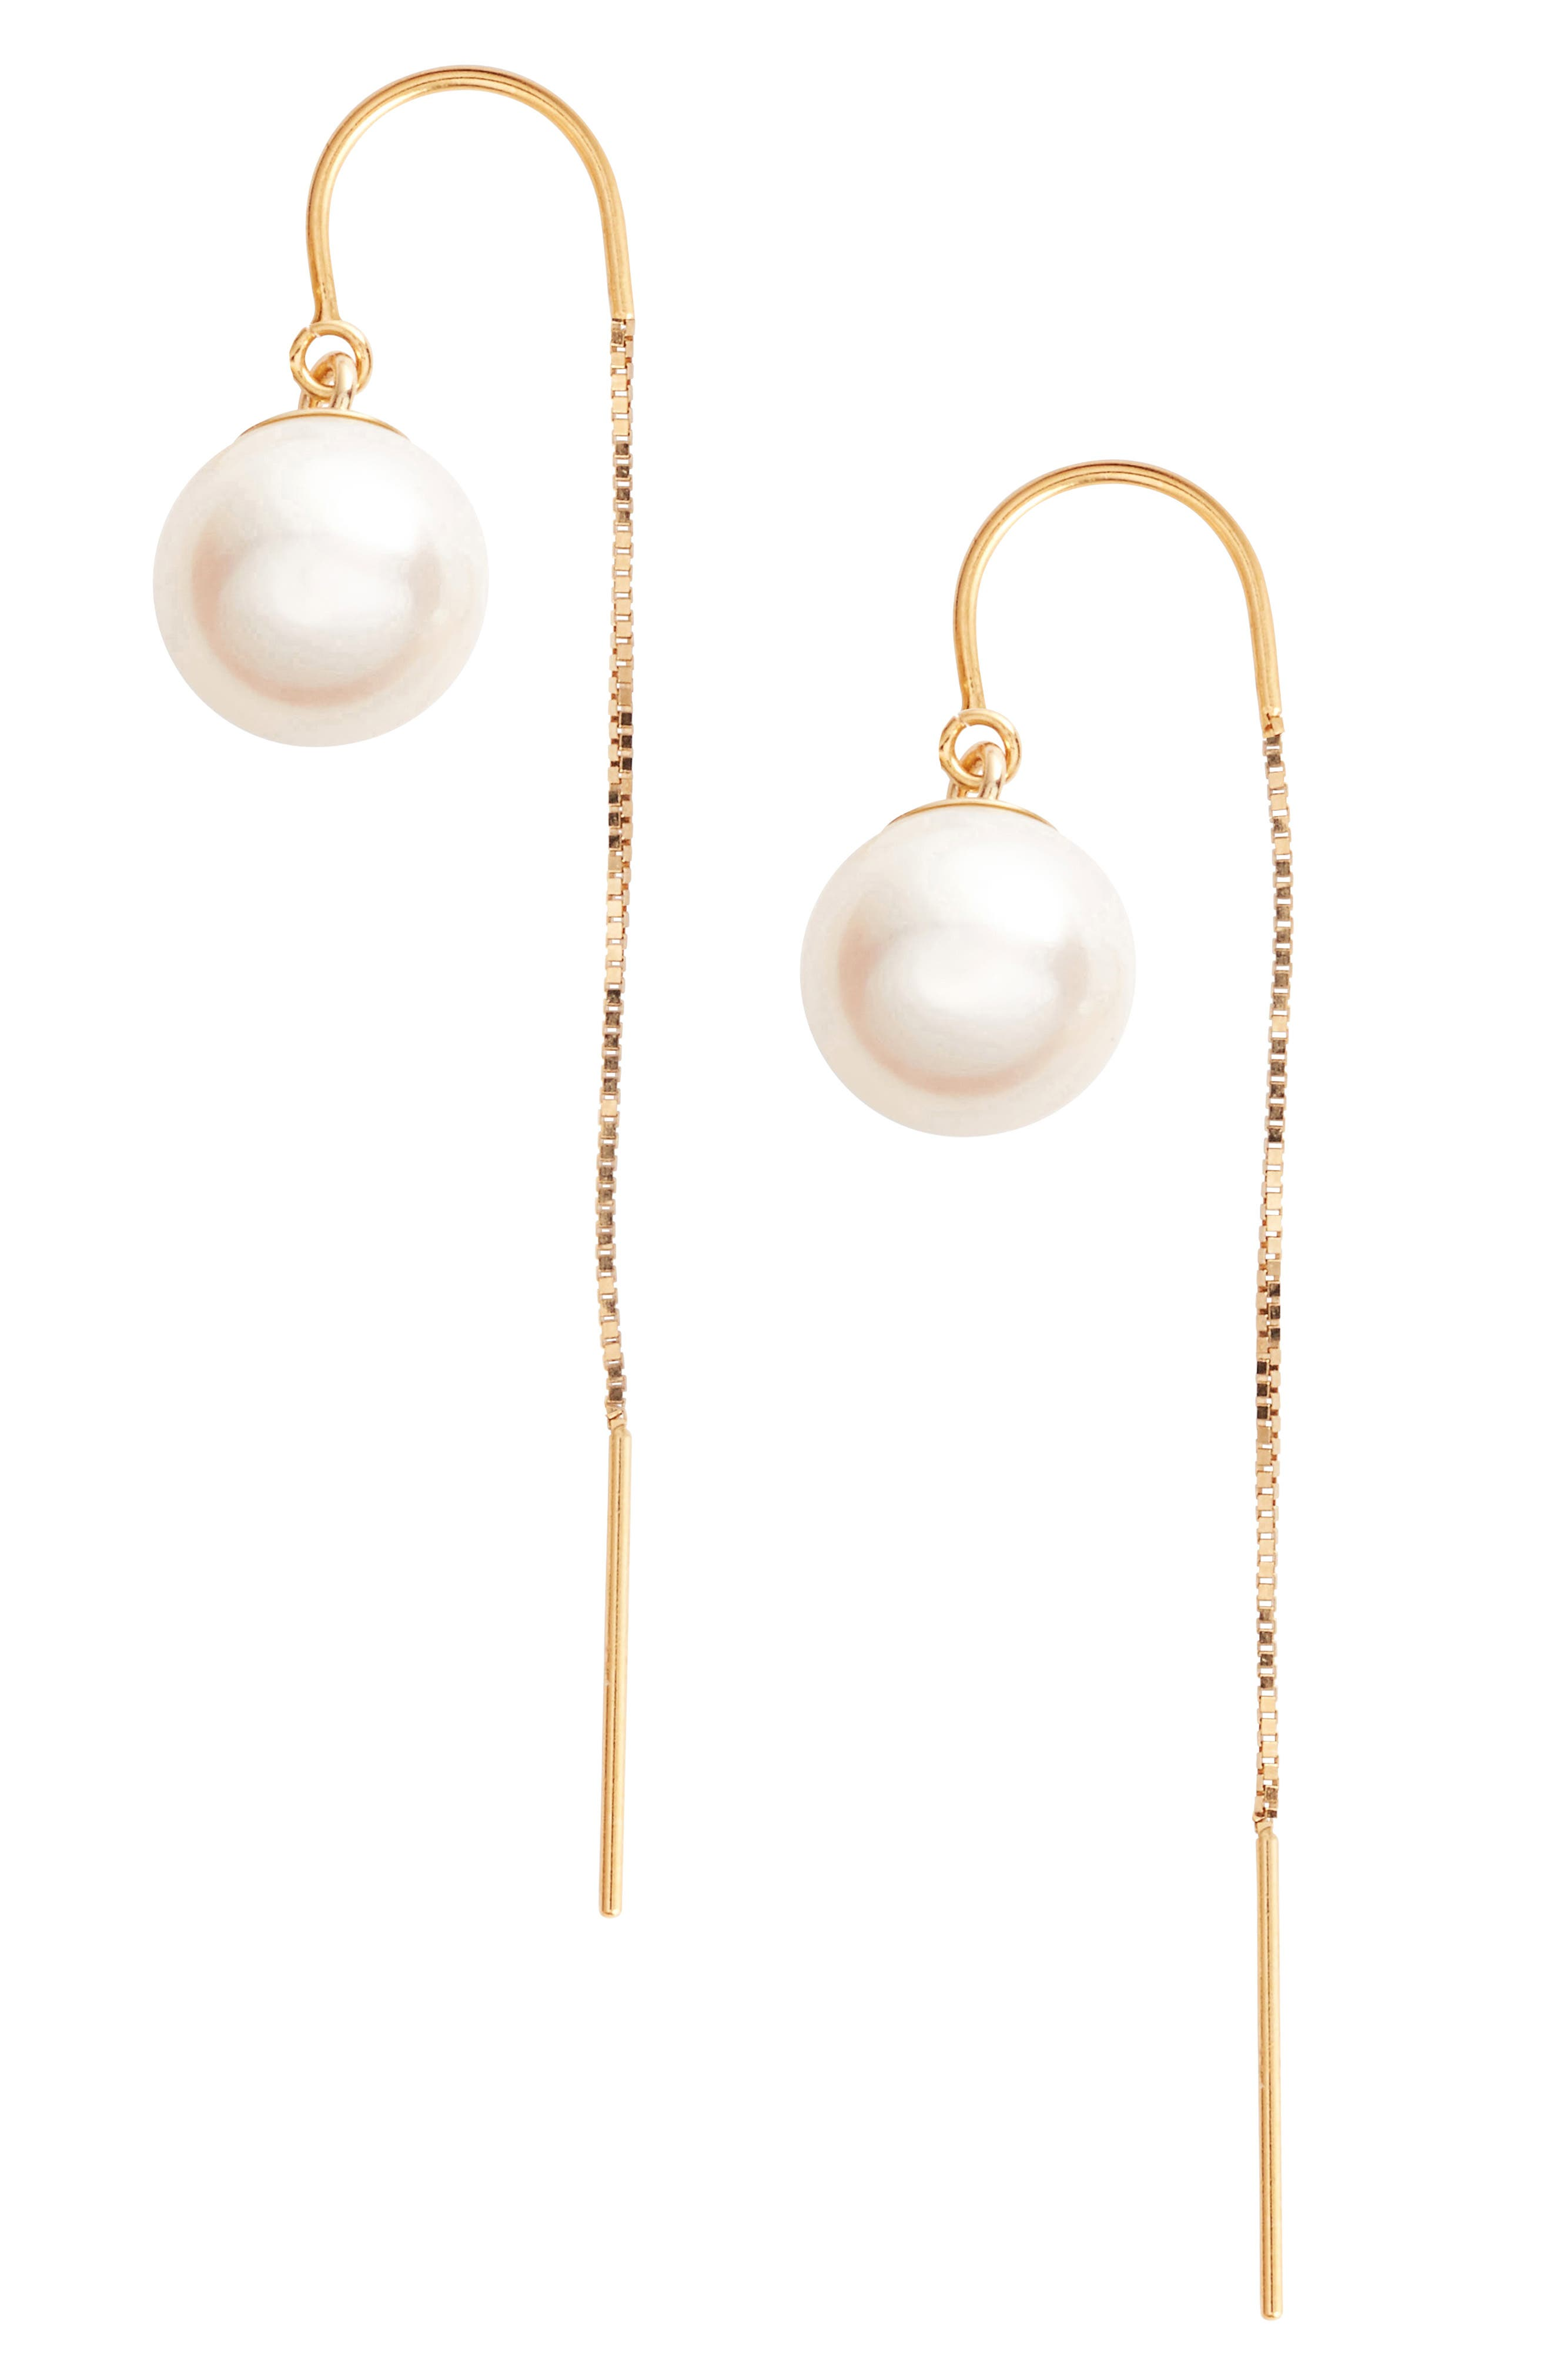 Poppy Finch Pearl Threader Earrings